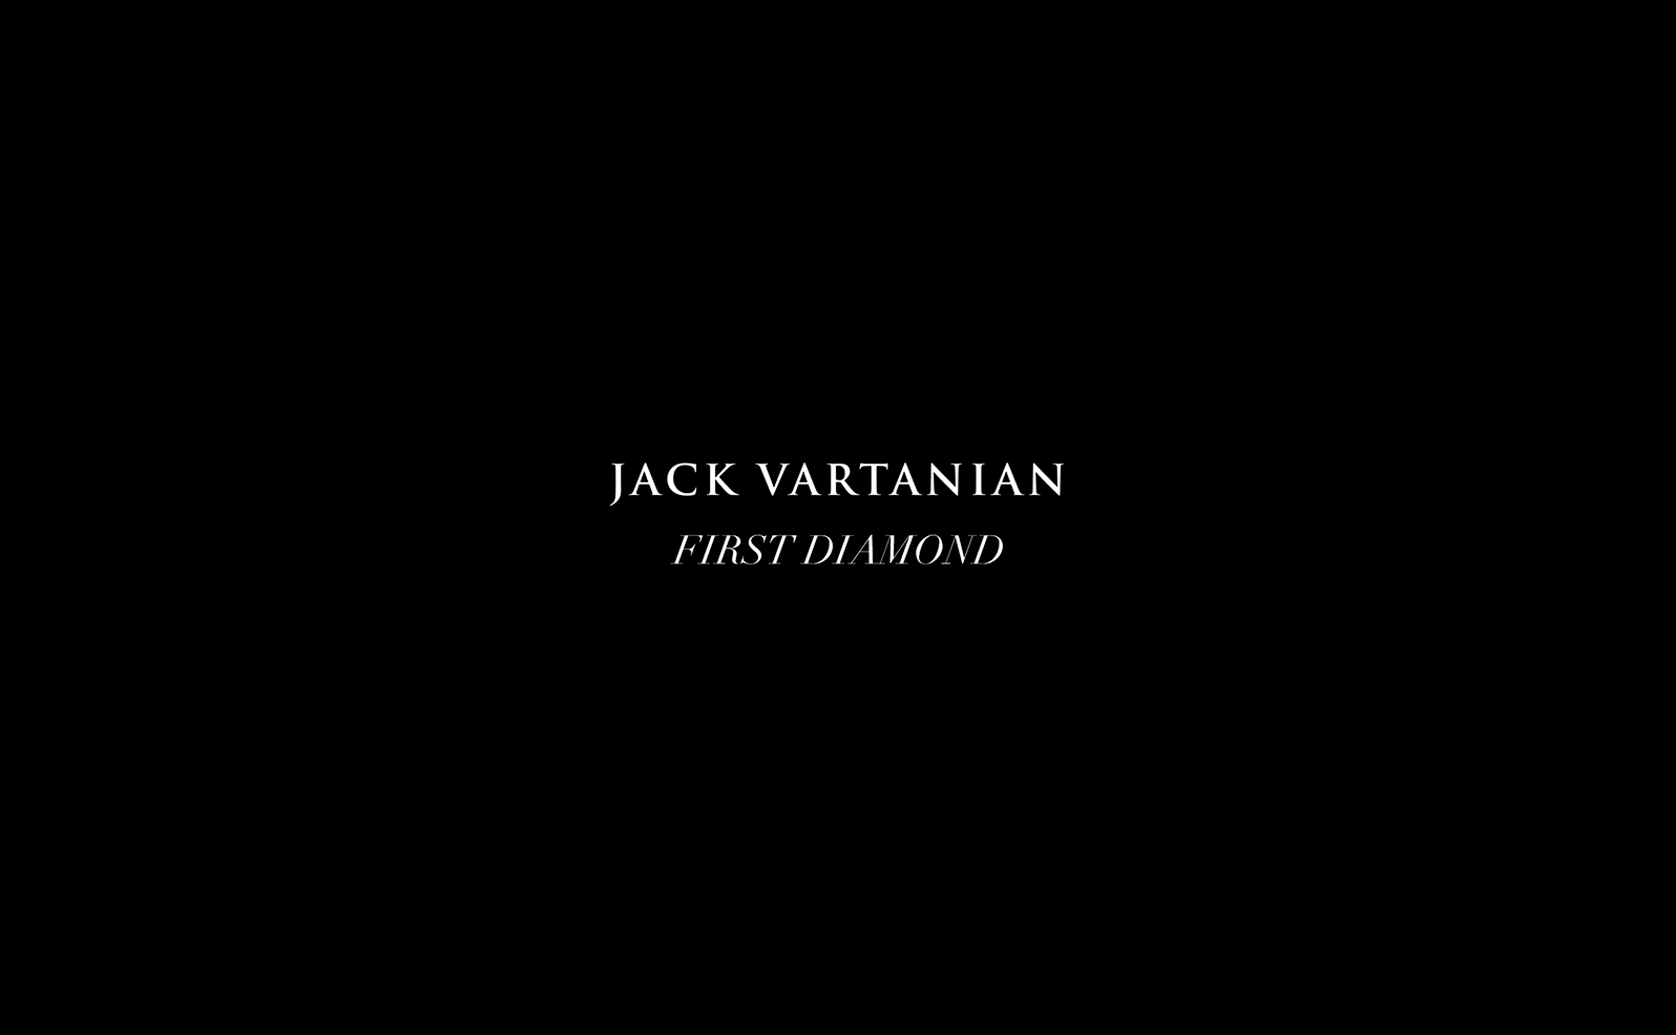 JACK VARTANIAN | FIRST DIAMOND